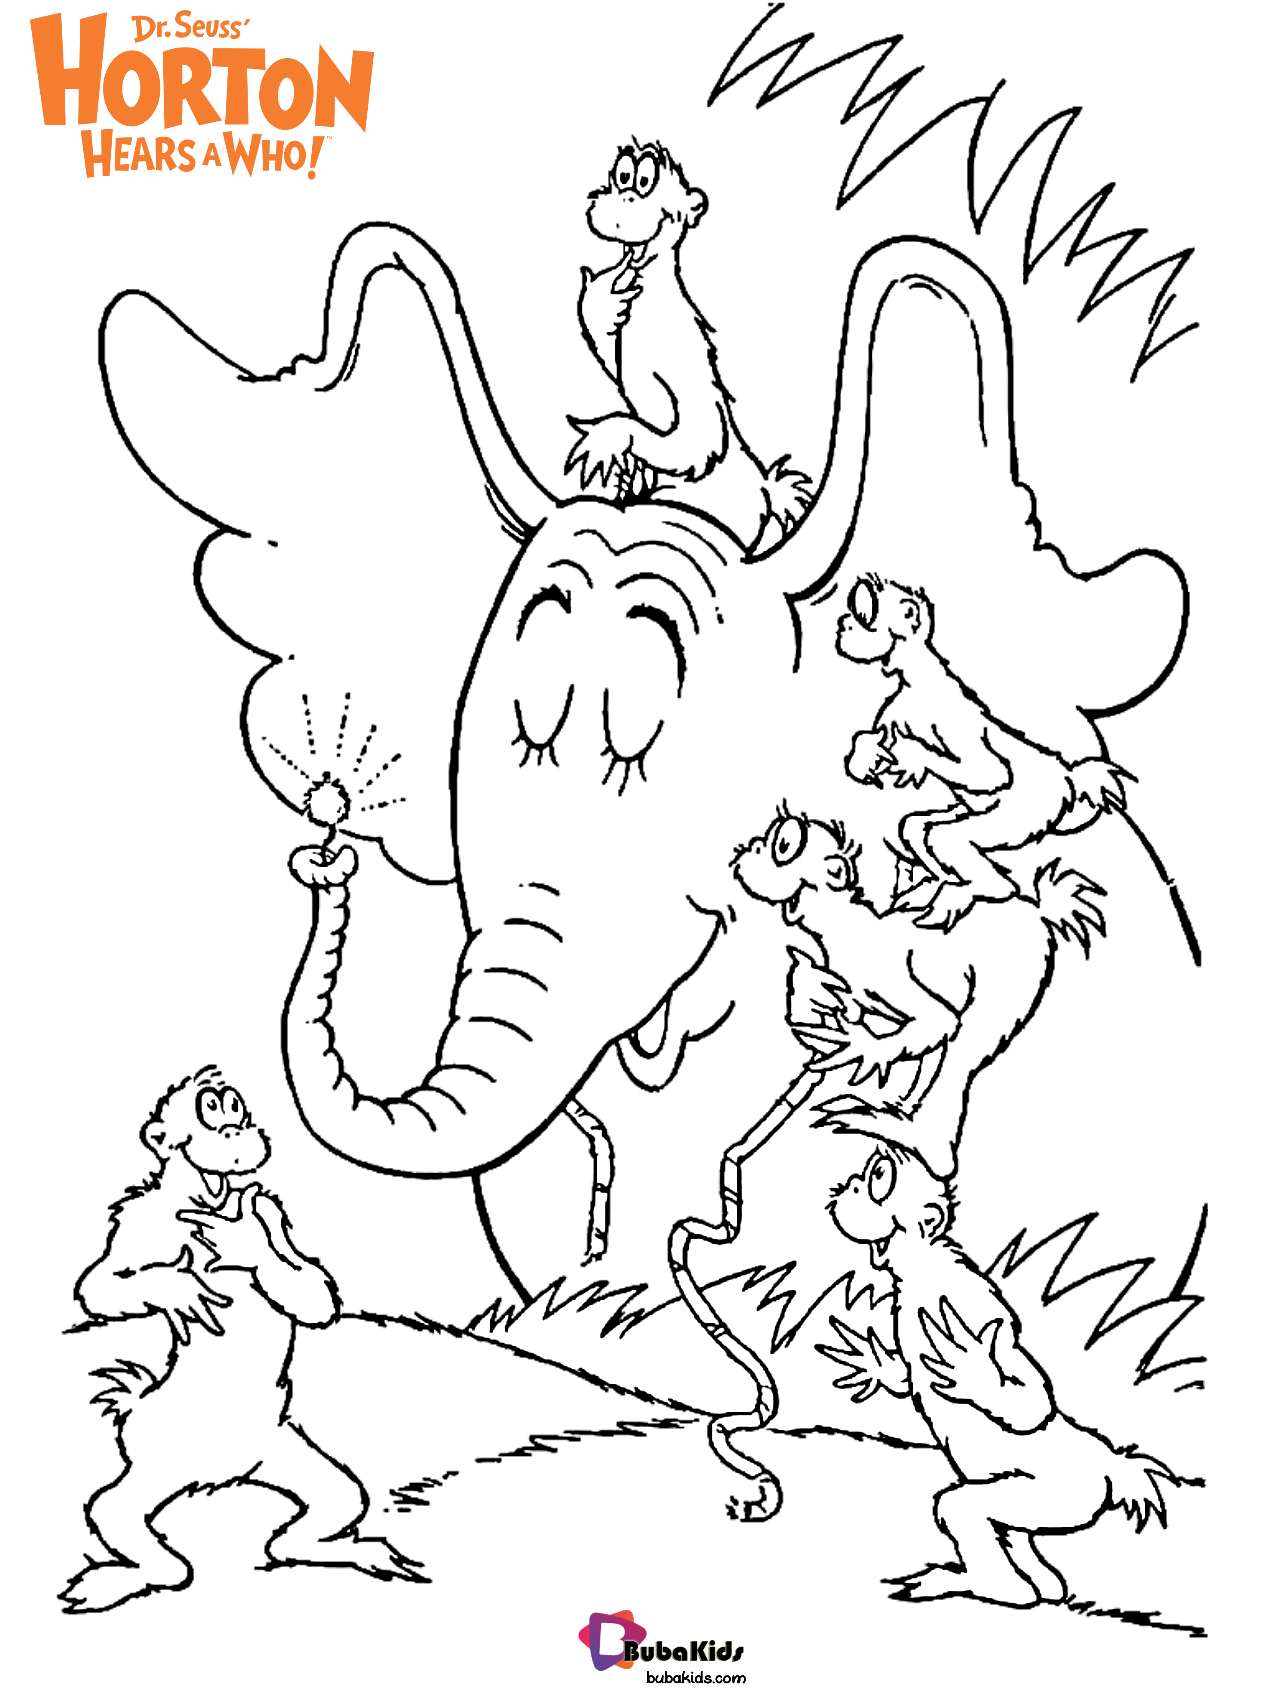 Dr Seuss Horton Hears A Who Free Download Coloring Page In